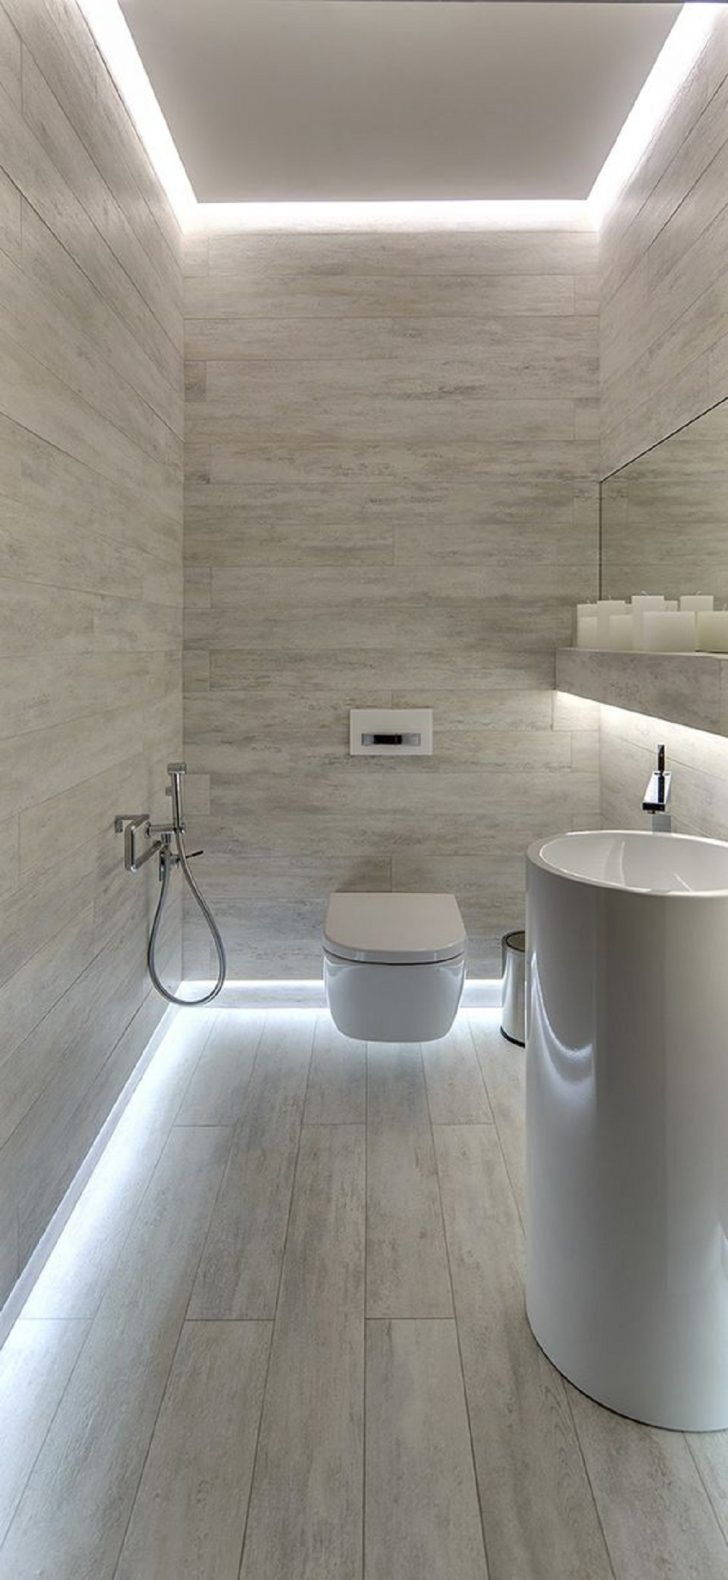 The 25 best bathroom ceiling light fixtures ideas on pinterest today we are presenting you an excellent collection of astonishing led lights solutions that will enlighten your interior mozeypictures Gallery